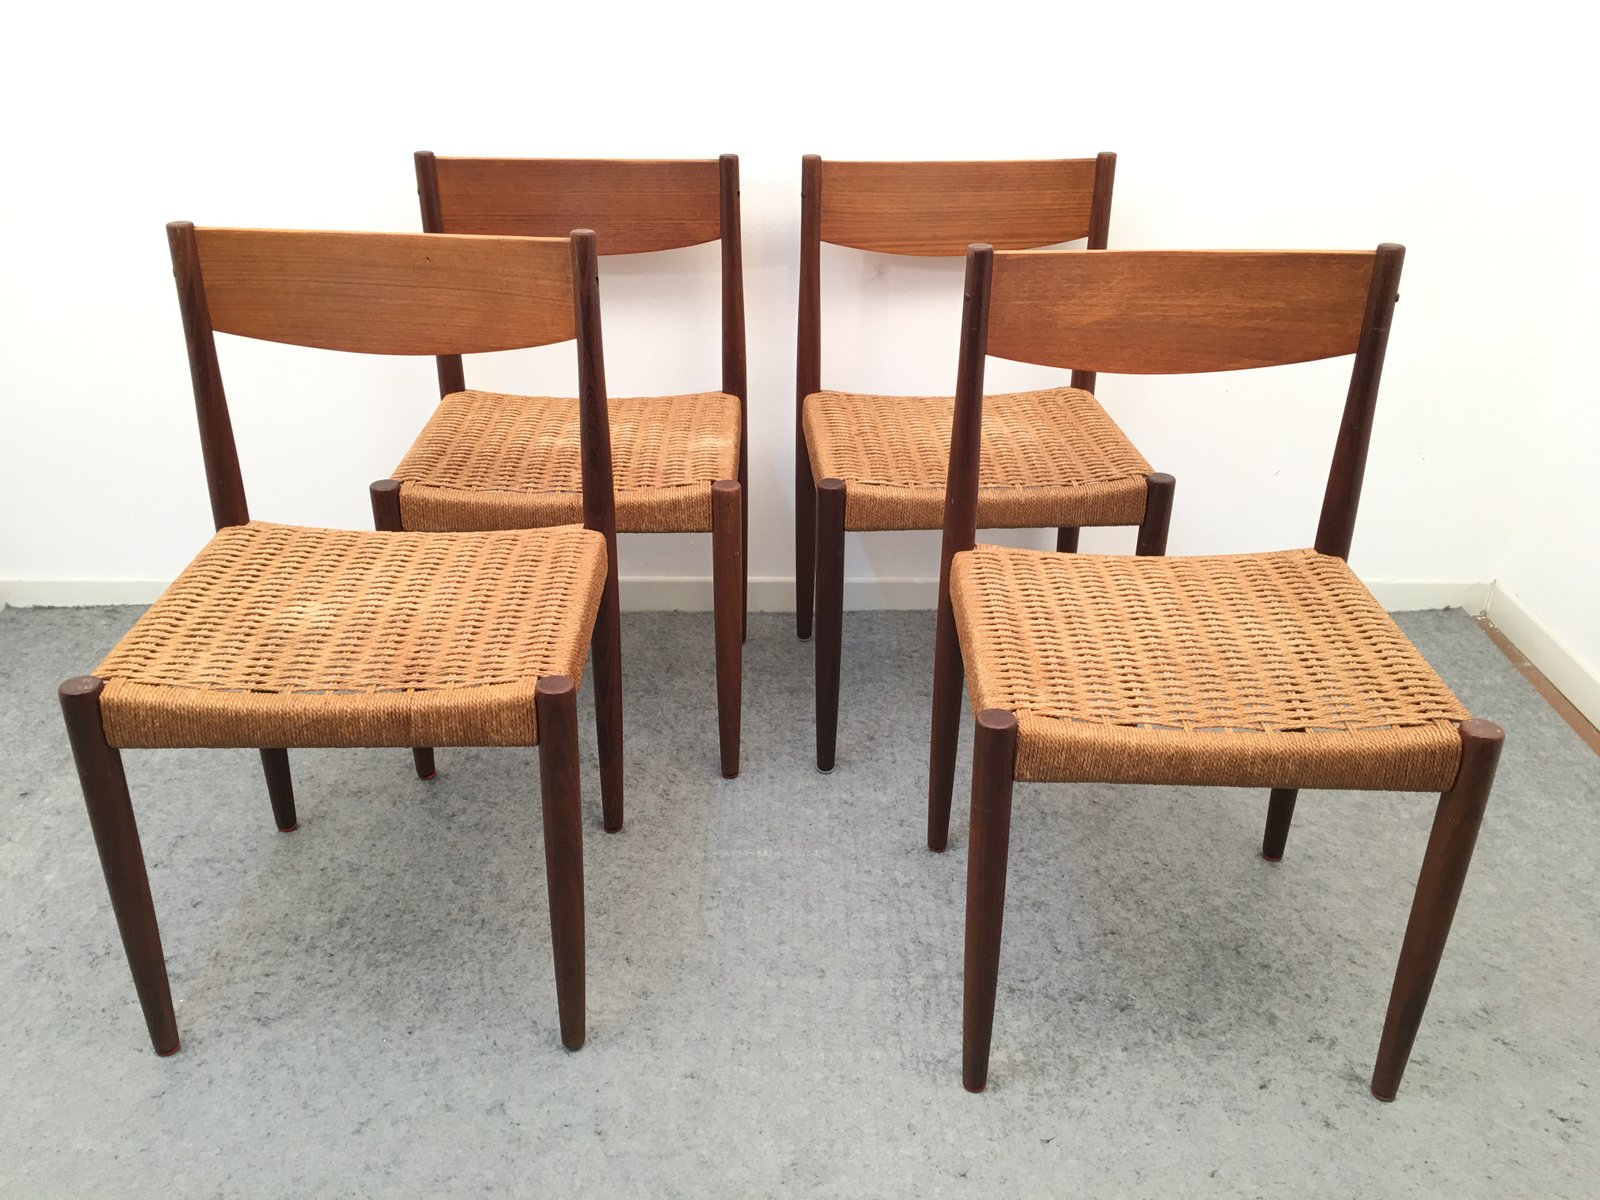 Danish Teak and Paper Cord Chairs by H Sigh & S¸n 1960s Set of